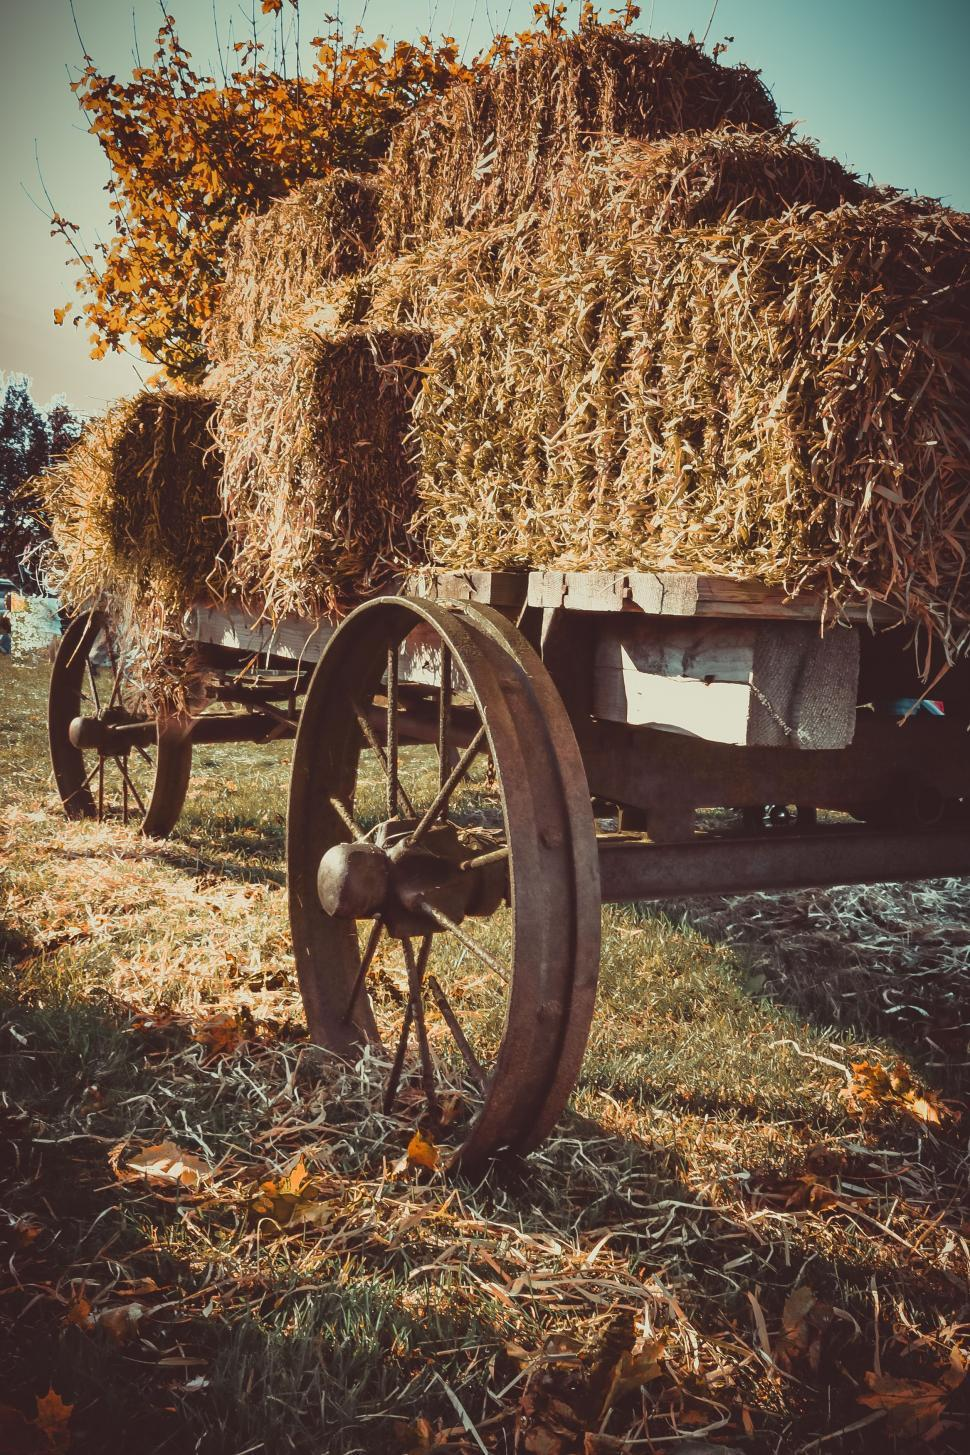 Download Free Stock Photo of Hay bales